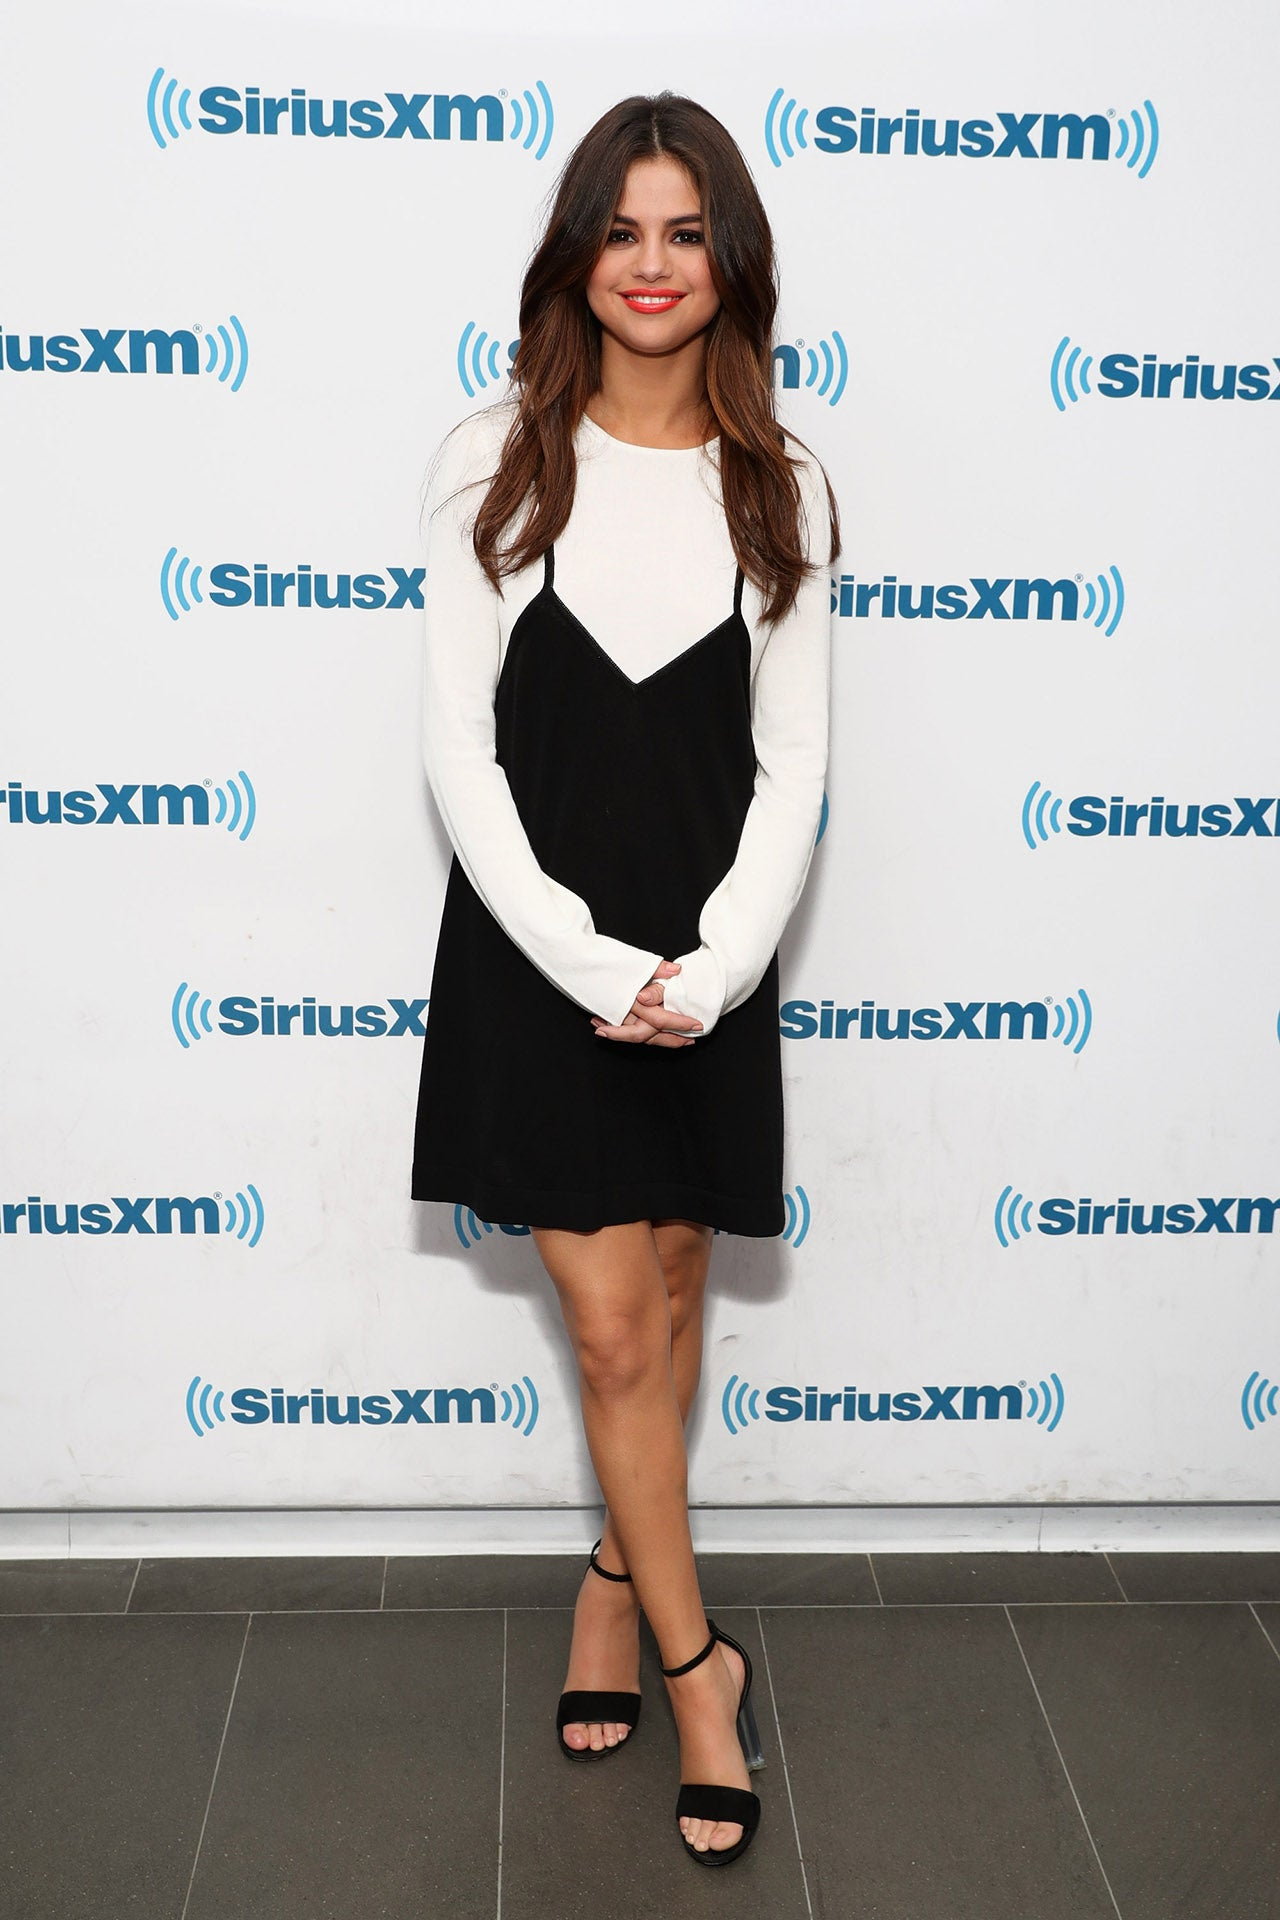 Selena Gomez Rocks Six Different Outfits In The Same Day